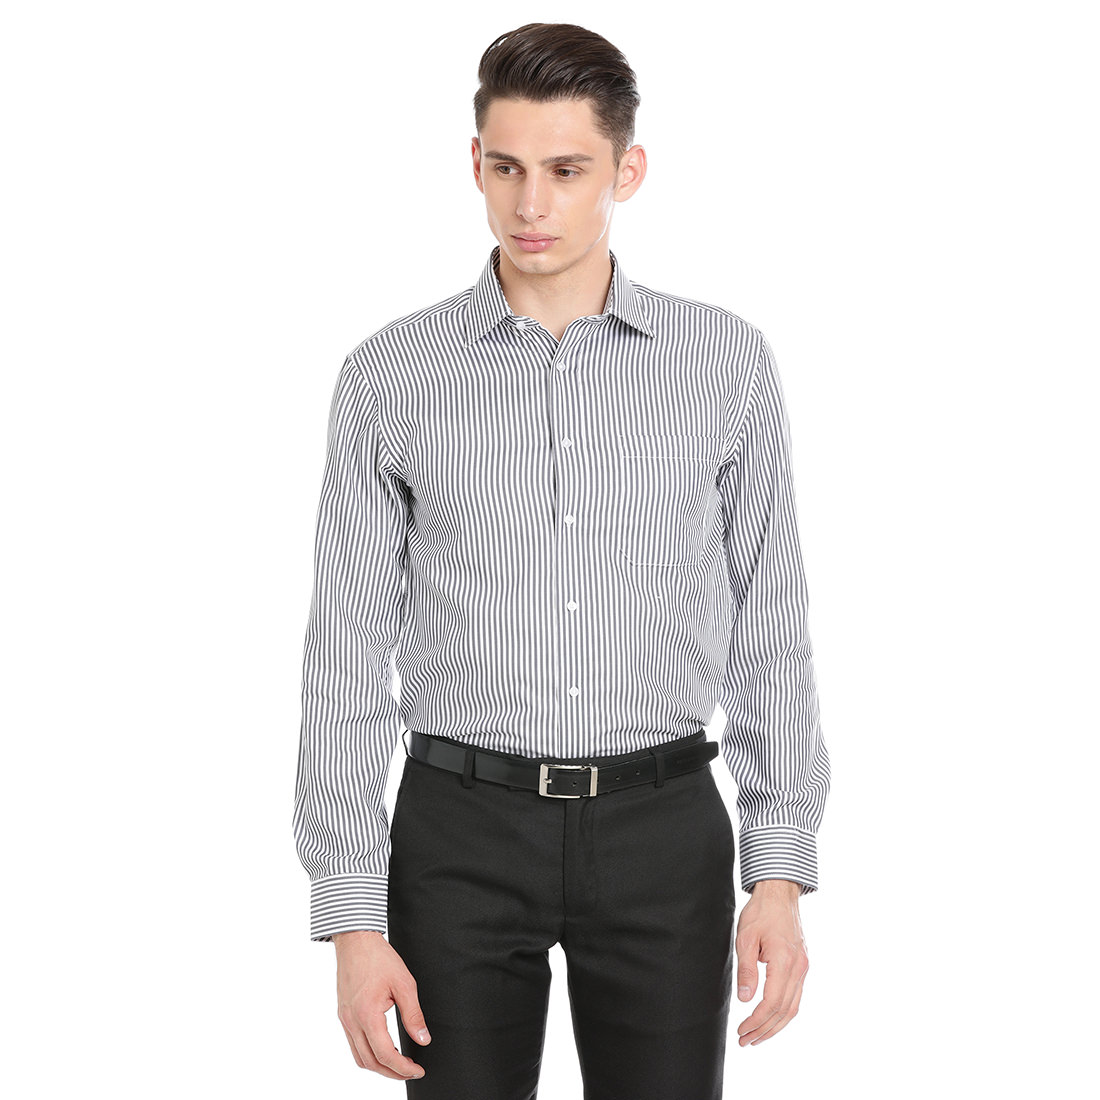 Paradigm Grey Color Formal Pure Cotton Non-Iron Shirt